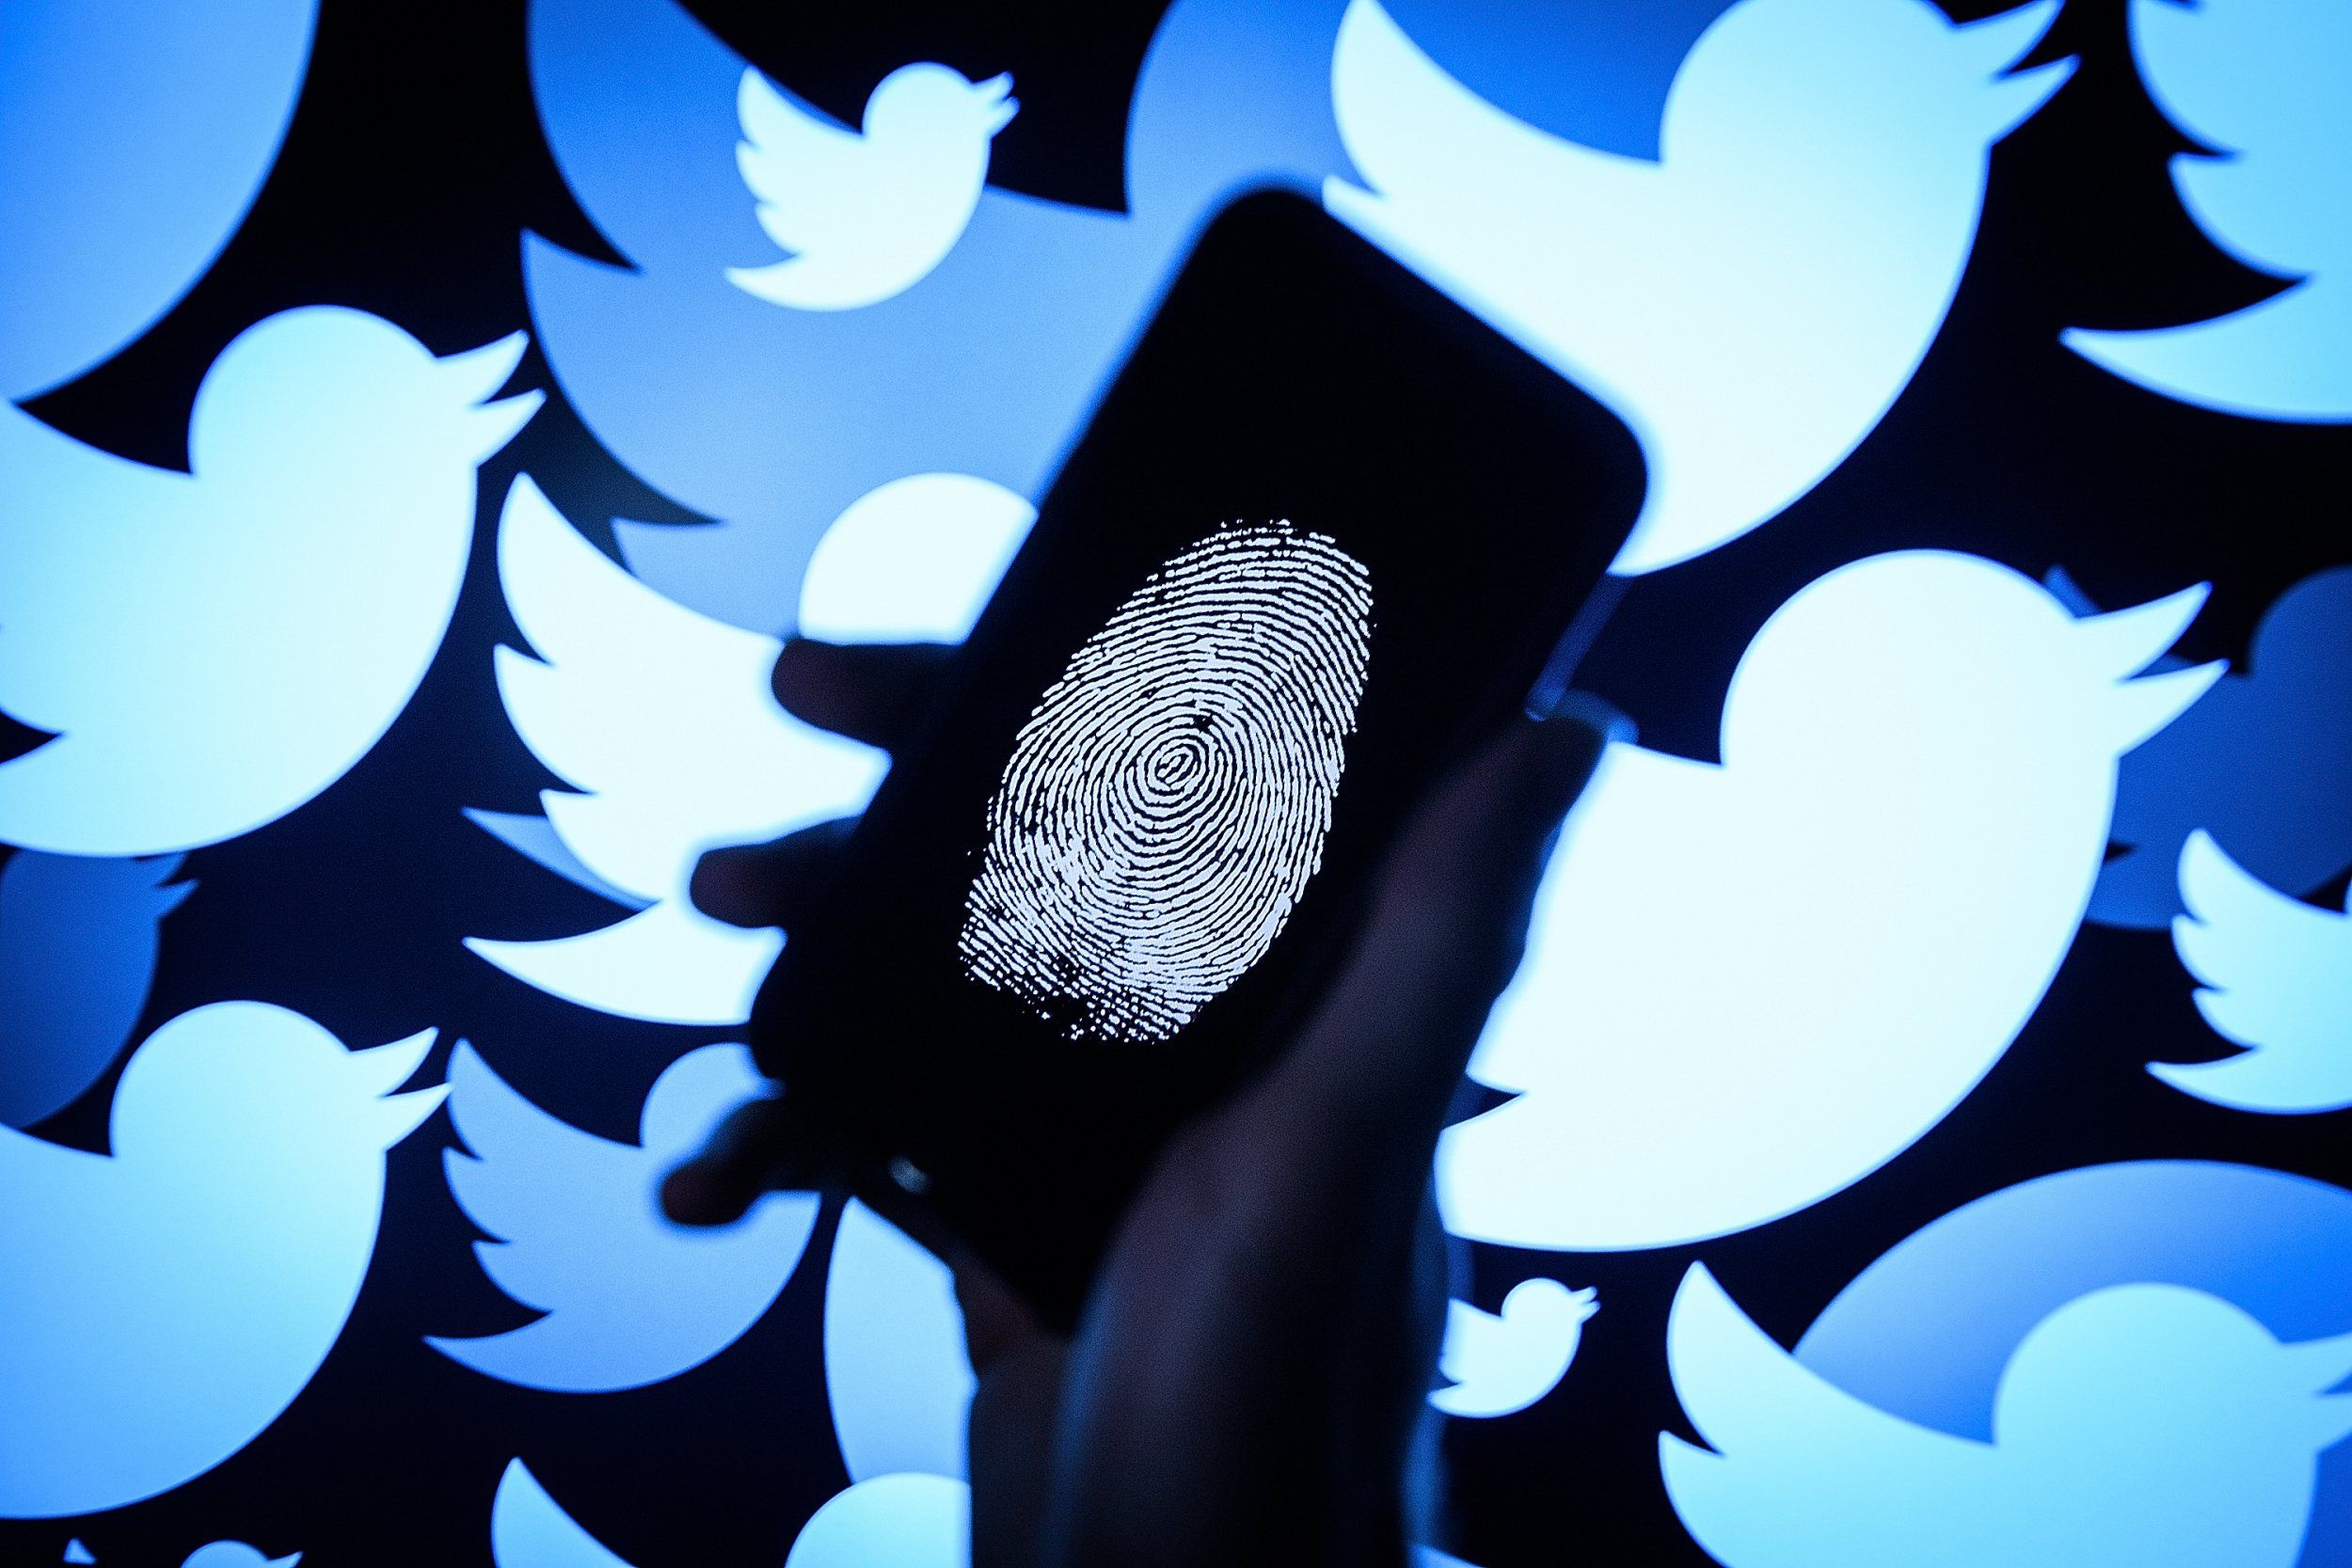 LONDON, ENGLAND - AUGUST 09: In this photo illustration, a thumbprint is displayed on a mobile phone as the logo for the Twitter social media network is projected onto a screen on August 09, 2017 in London, England. With around 328 million users worldwide, Twitter has gone from a small start-up in for the public 2006 to a broadcast tool of politicians and corporations in 2017. (Photo by Leon Neal/Getty Images)